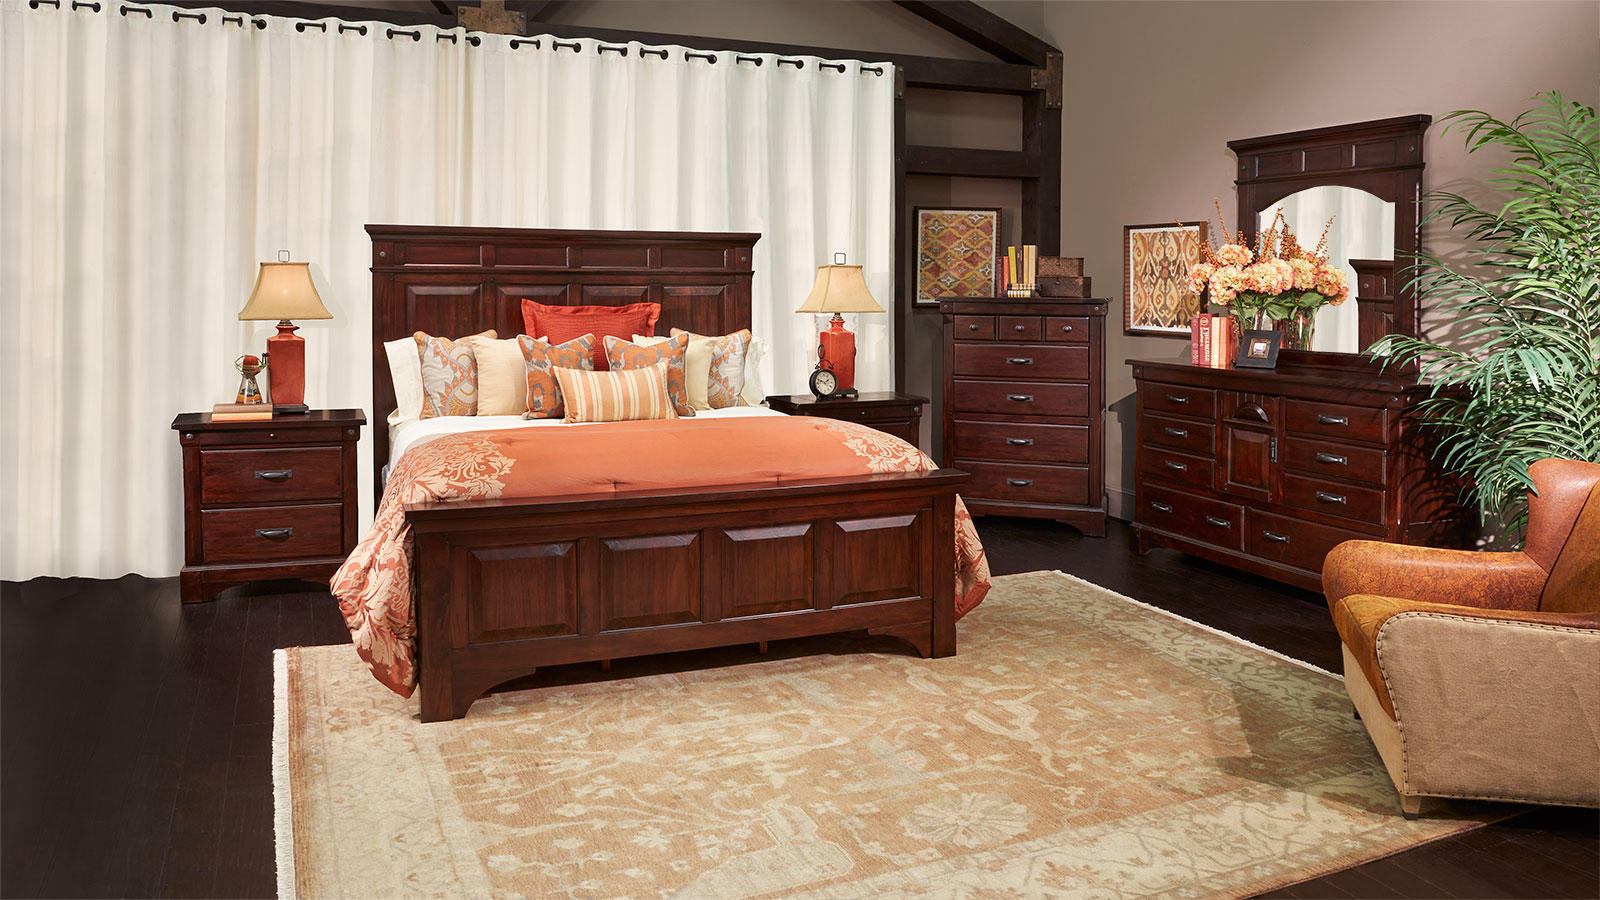 2015 Traditional Bedroom Furniture Decor (Image 2 of 9)